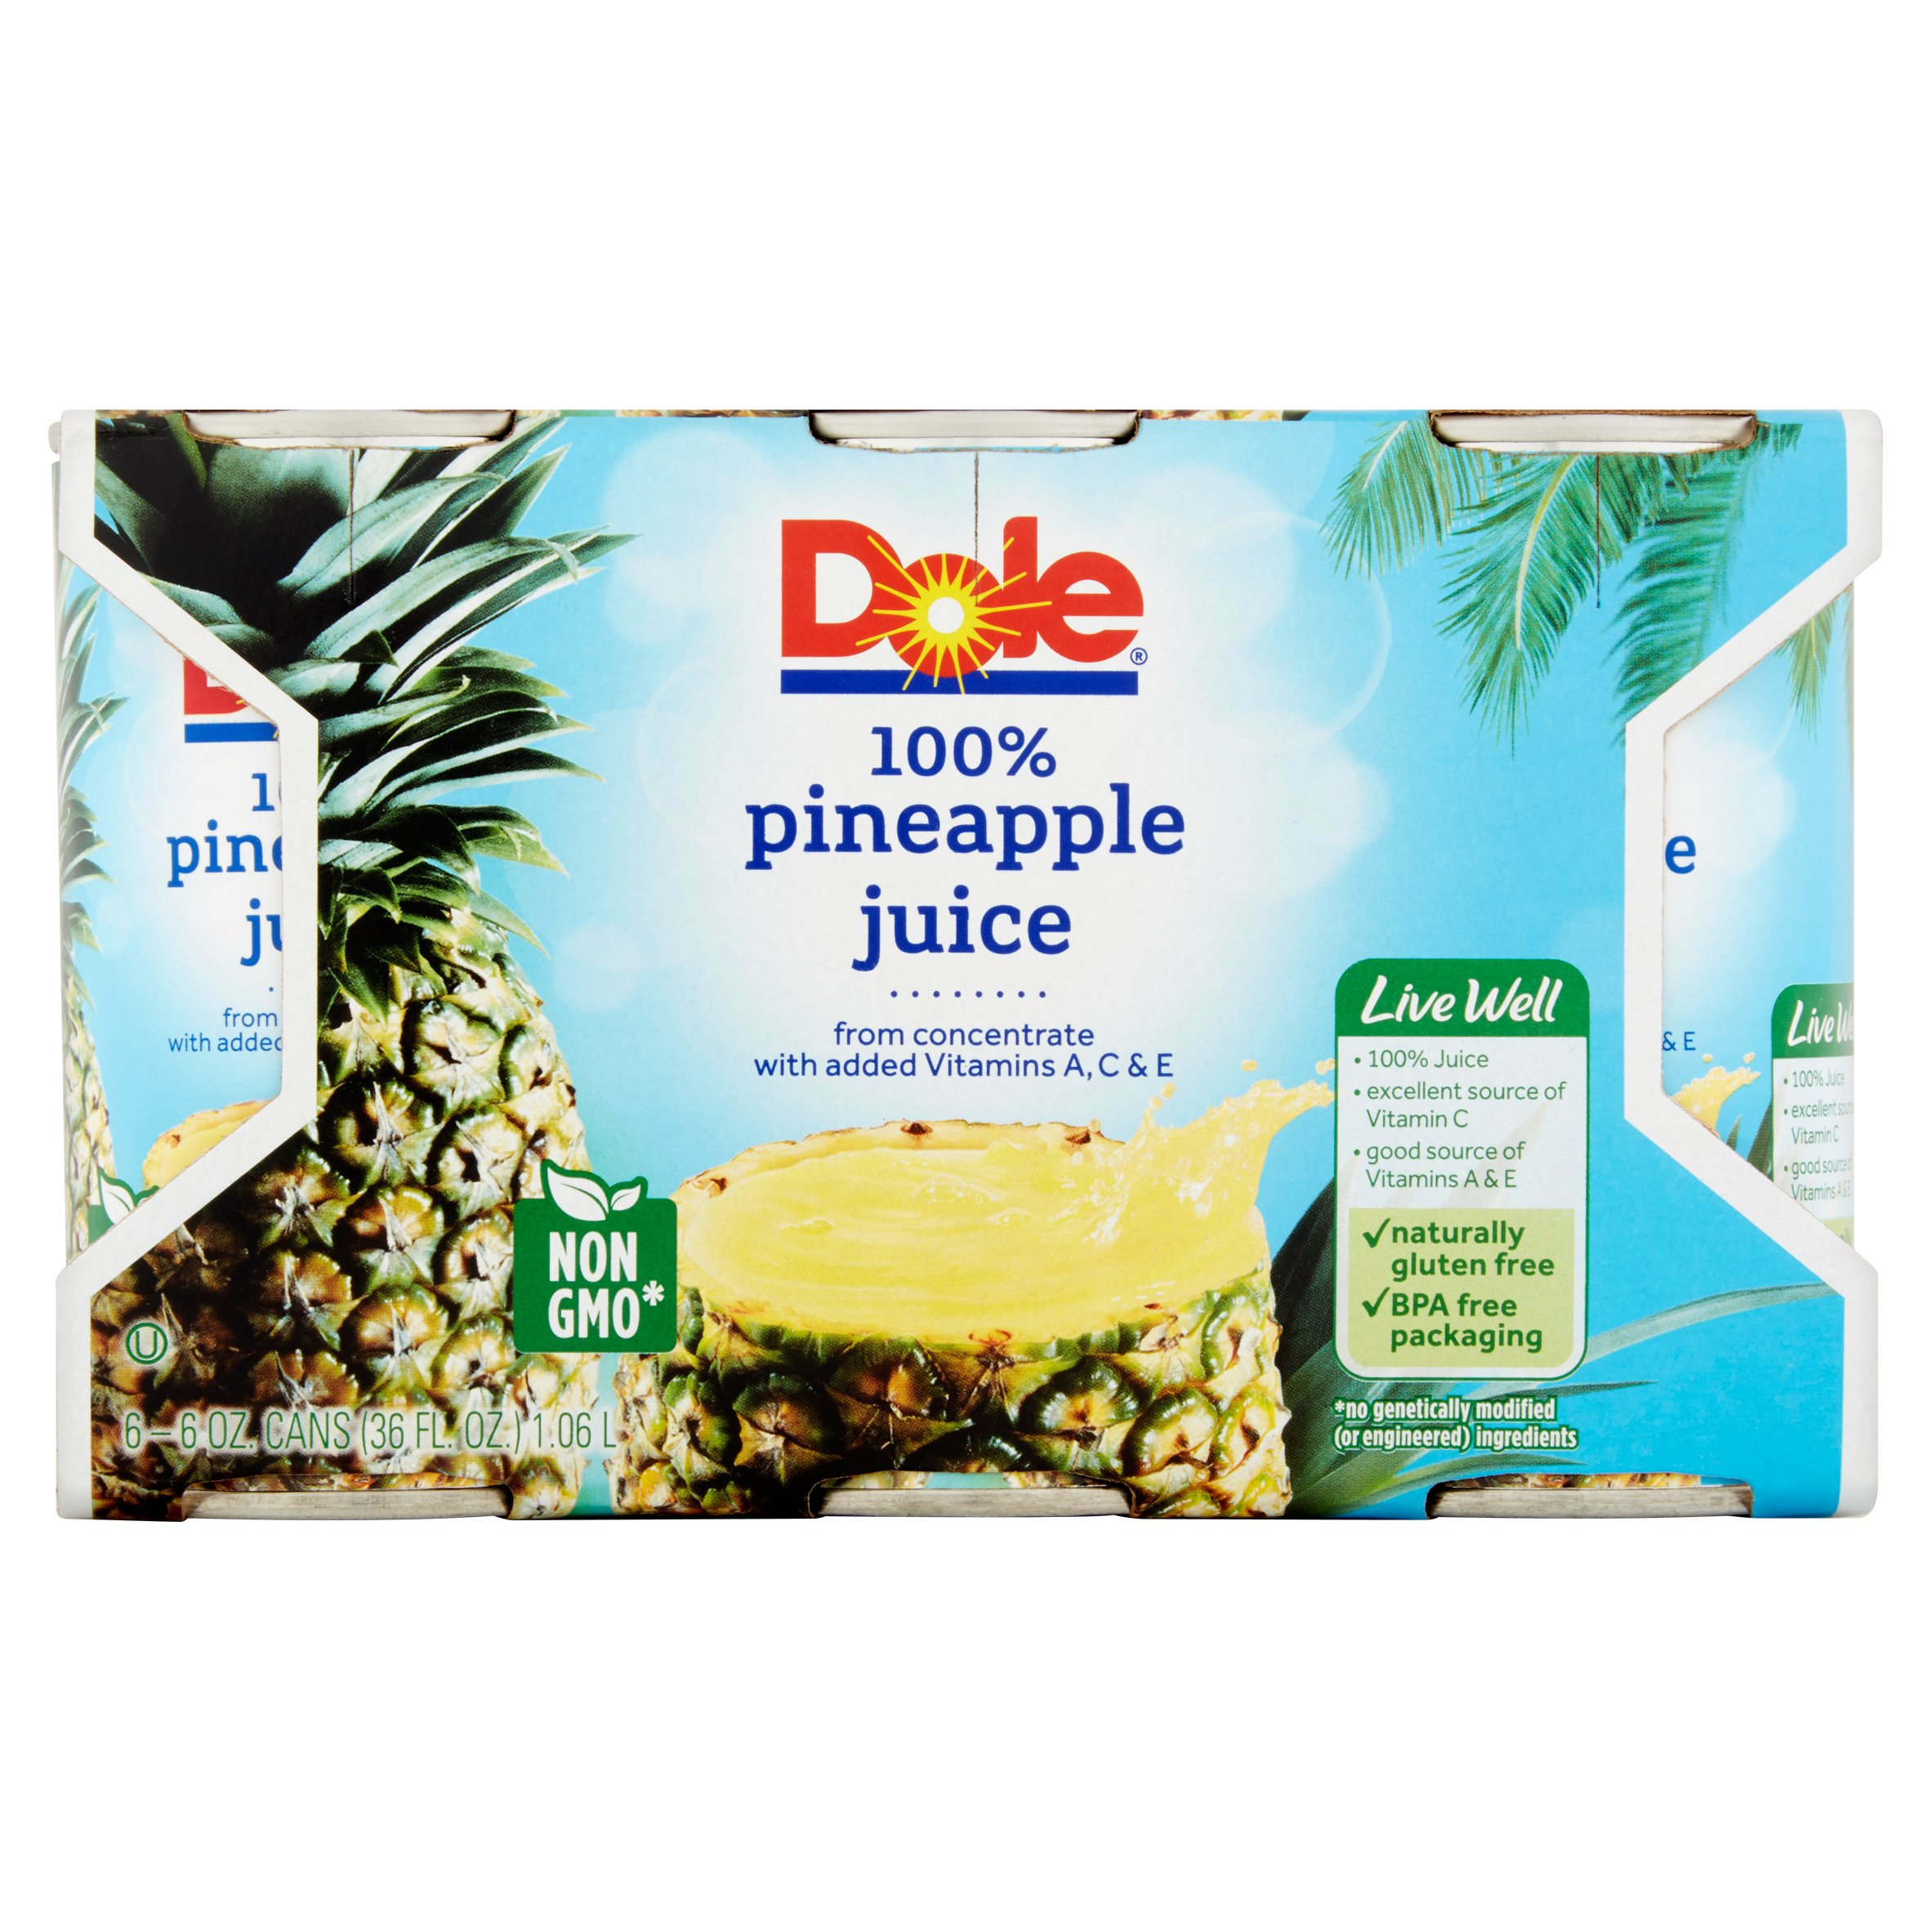 Dole 100% Pineapple Juice, 6 oz, 6 cans by Dole Packaged Foods, LLC